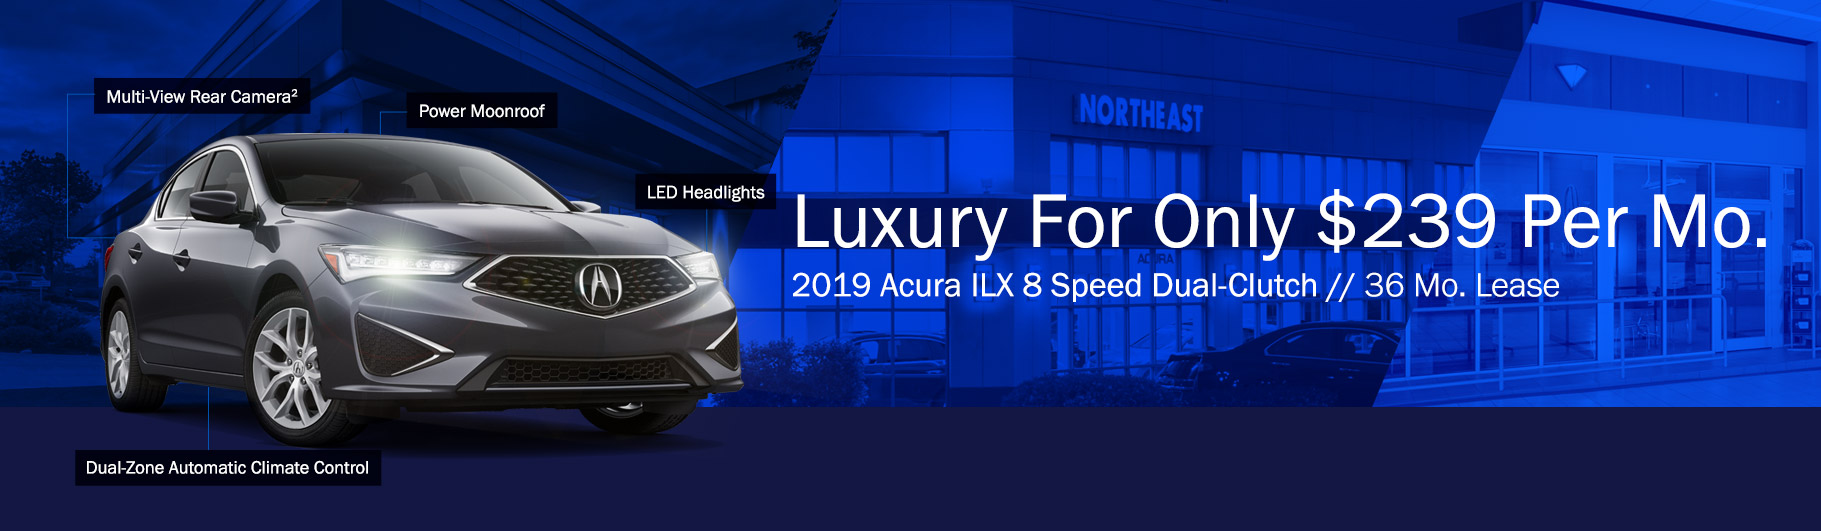 2019 Acura ILX 8 Speed Dual-Clutch - Lease for $239 per month for 36 months. Multi-View Rear Camera, Power Moonroof, LED Headlights, Dual-Zone Automatic Climate Control